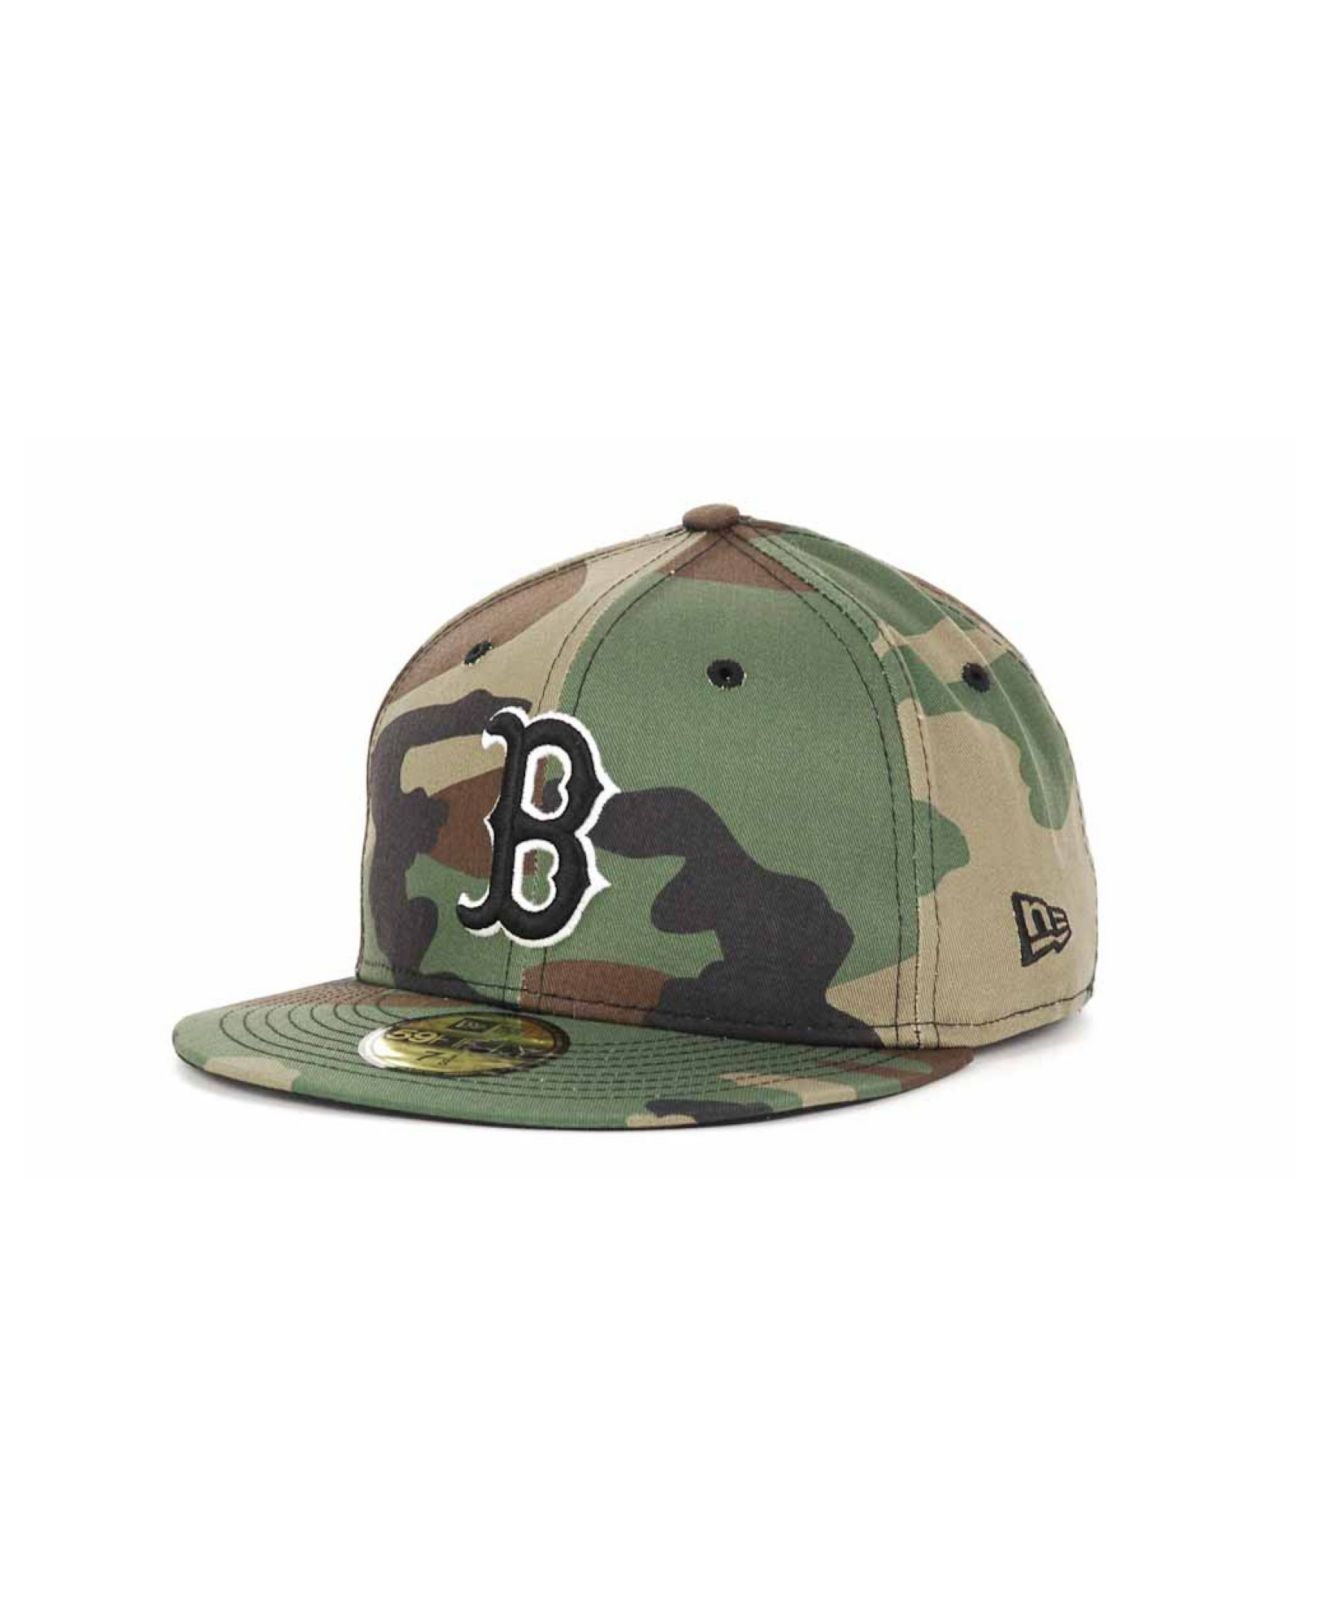 lyst ktz boston red sox bc camo 59fifty cap in green for men. Black Bedroom Furniture Sets. Home Design Ideas